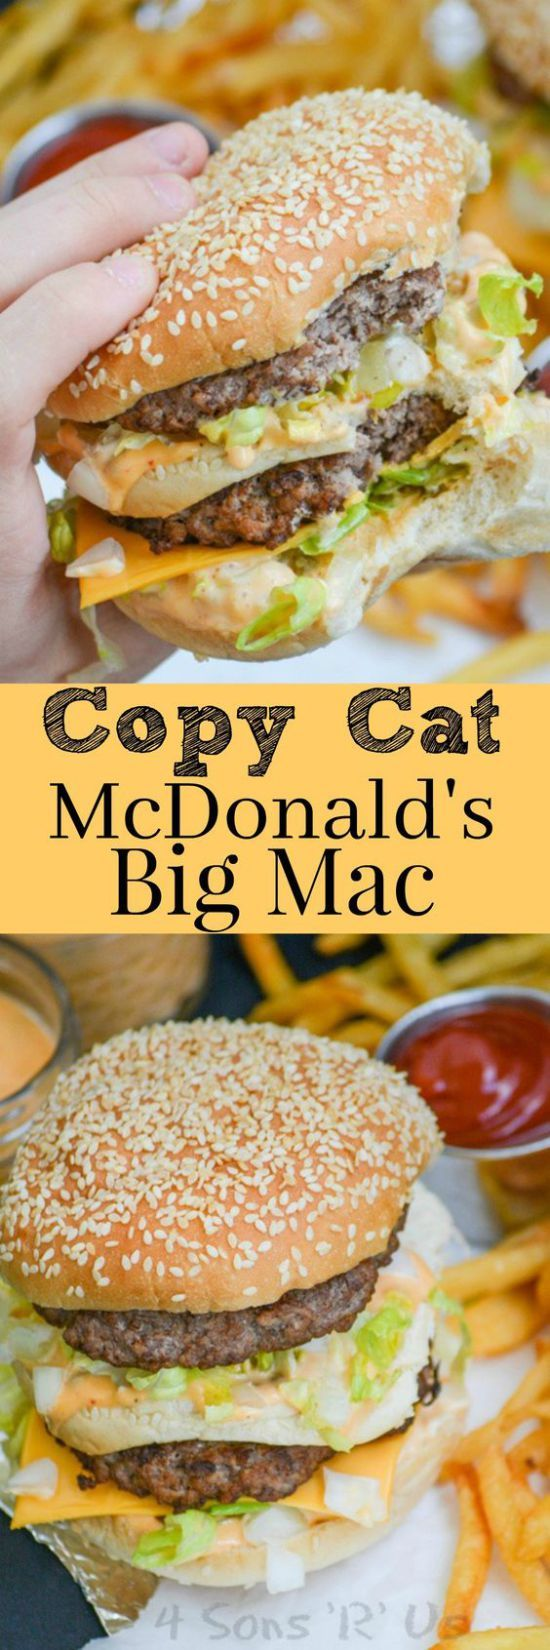 """Copycat McDonald's BIG MAC hamburger Recipe via 4 Sons """"R"""" Us """"Get an authentic taste of your favorite fast food burger with this Copy Cat McDonald's Big Mac. It's got everything you crave about the classic double decker sandwich, including the 'secret sauce', that's a spot on replica. Serve it with an ice cold coke, and crispy french fries for an authentic lunch or dinner."""""""